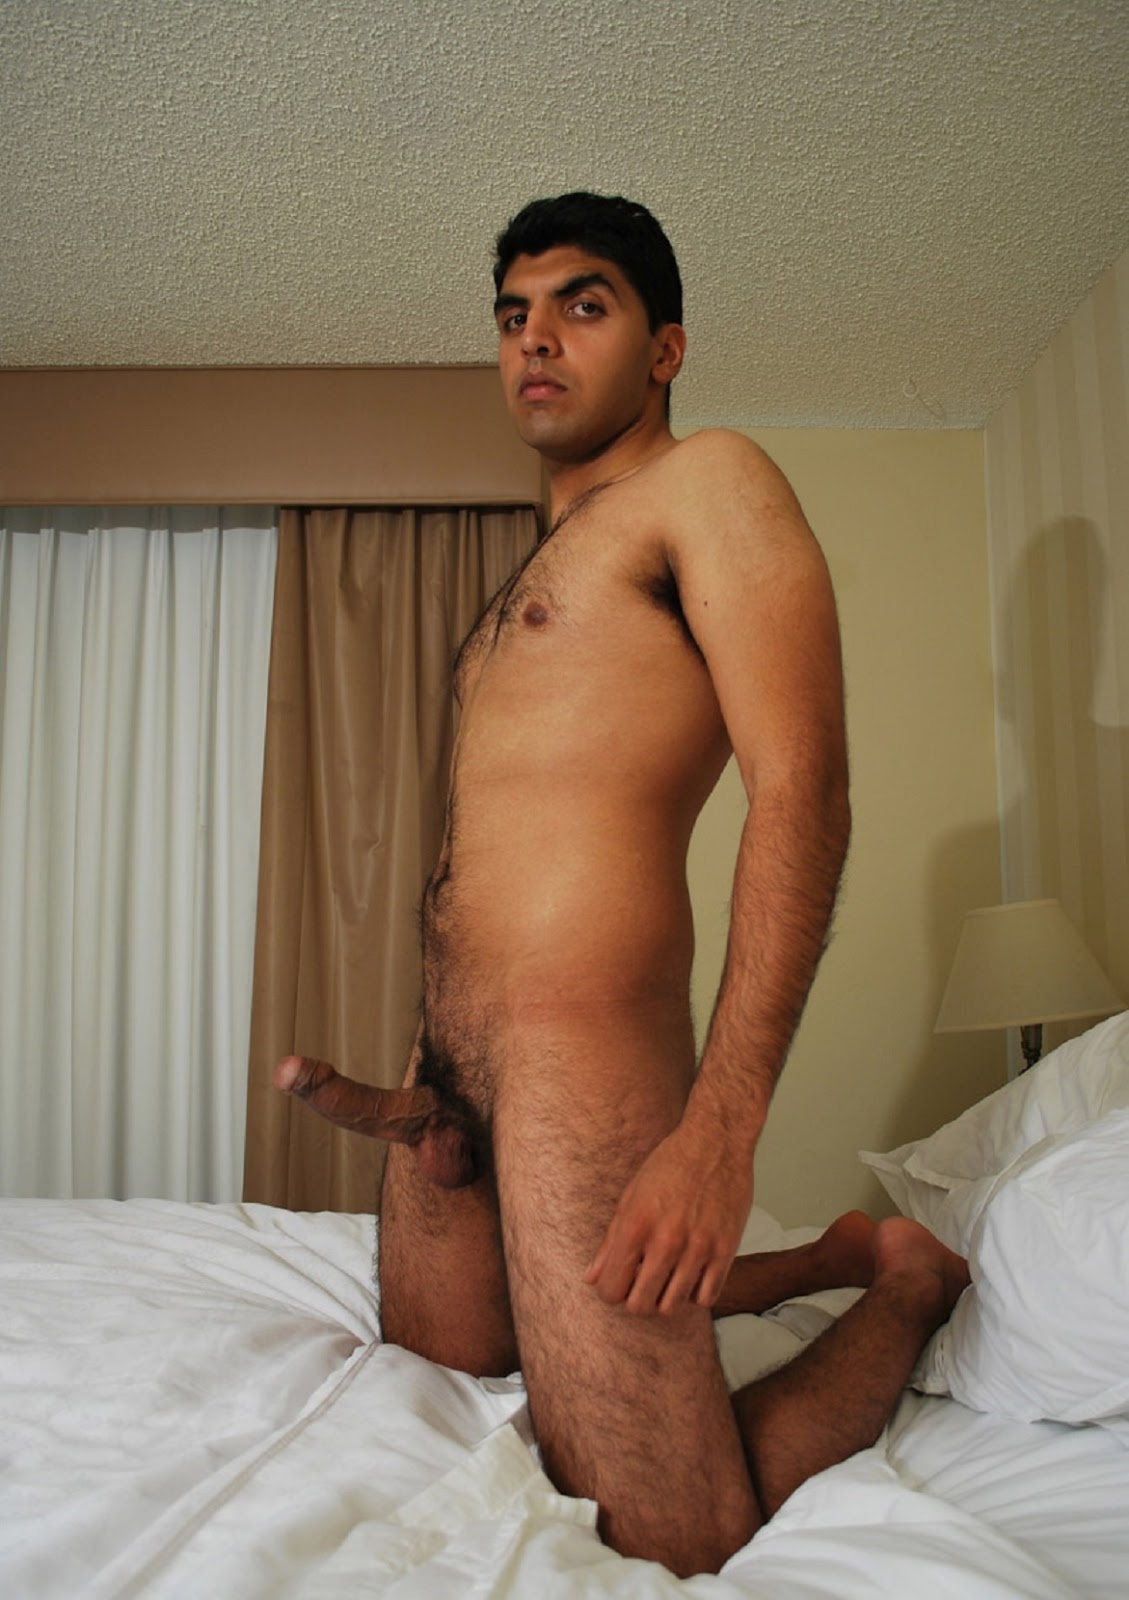 pakistani-boys-nud-photos-free-nude-sex-yoga-videos